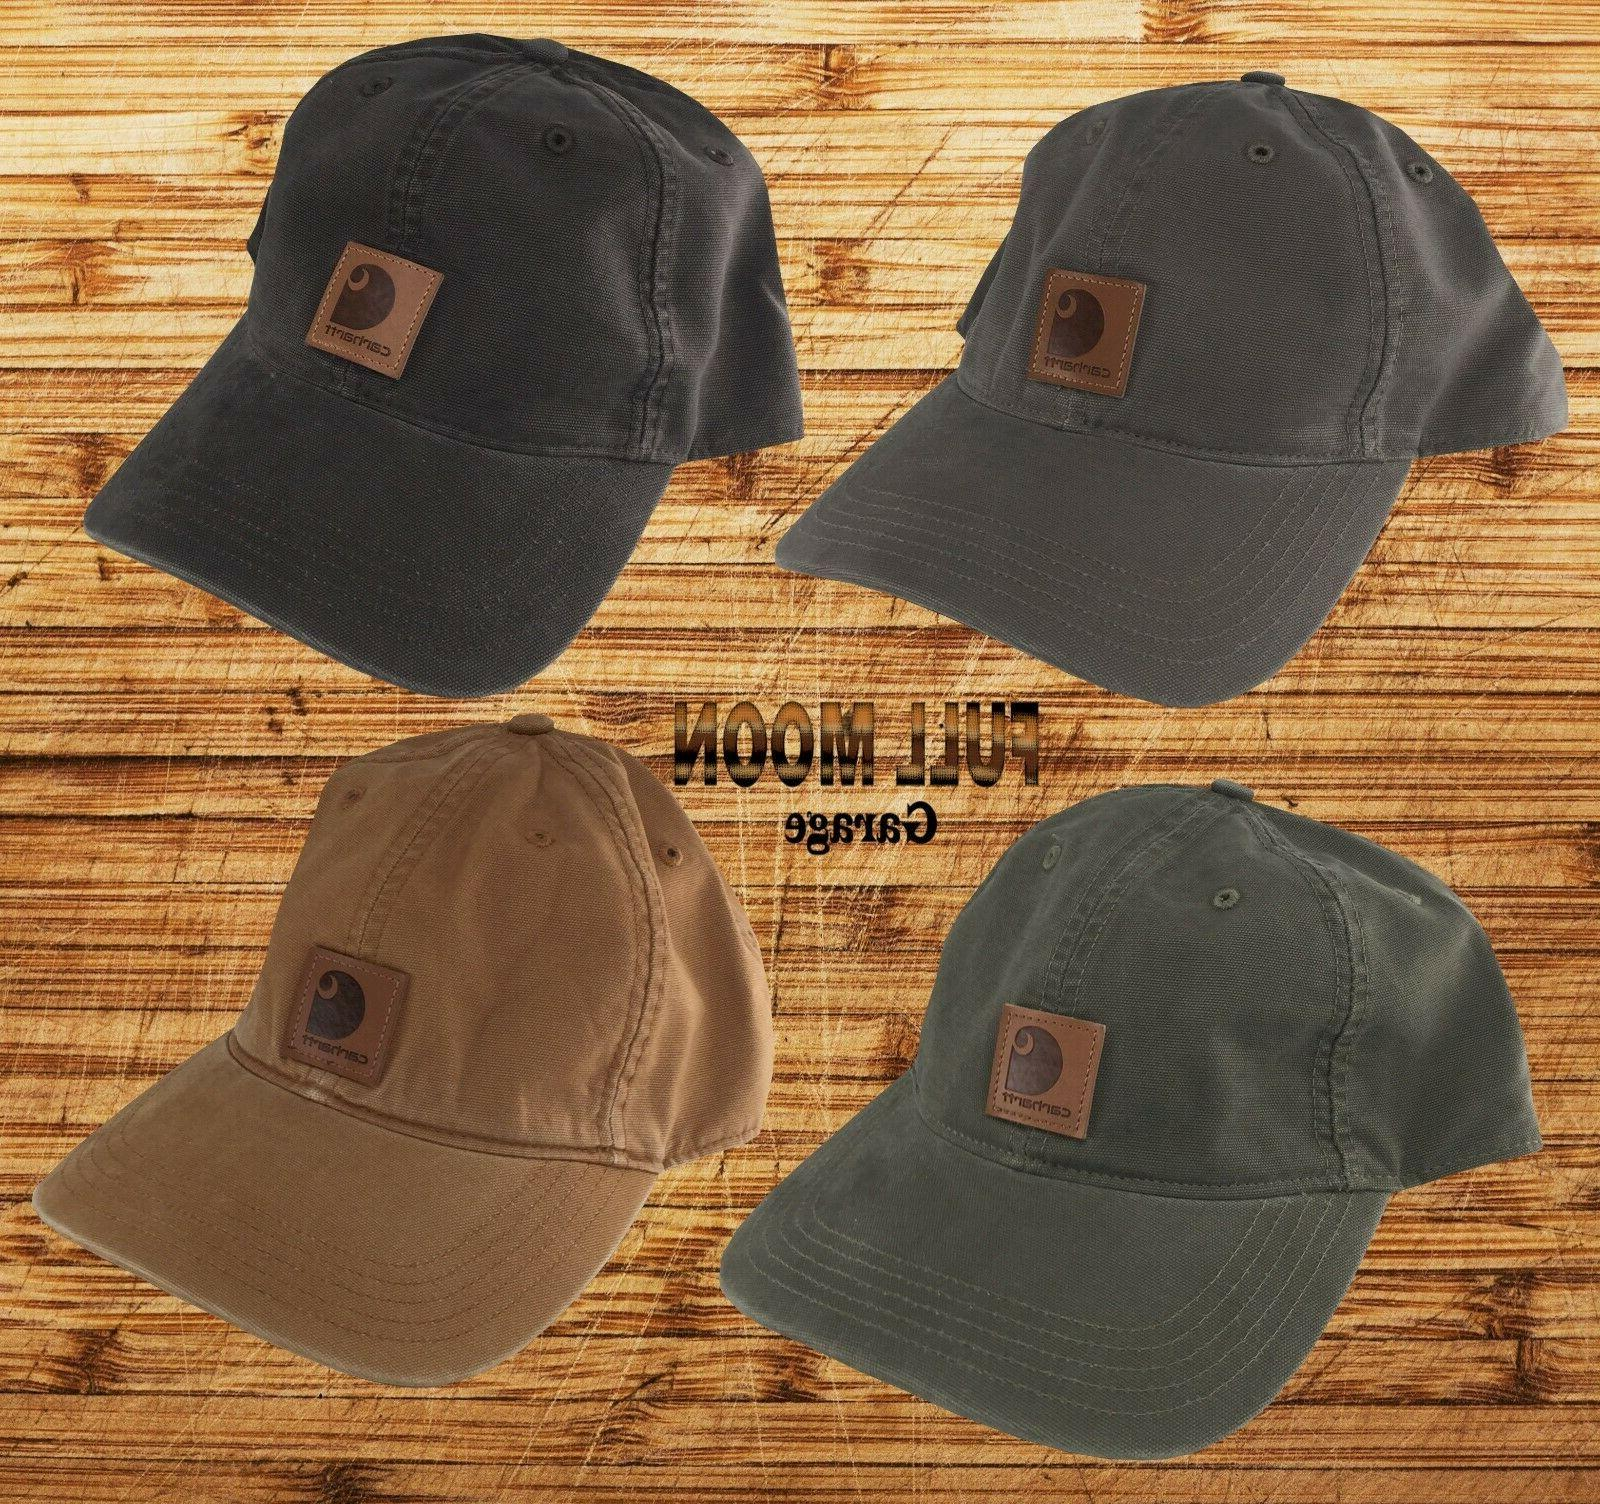 new odessa relaxed fit mens adjustable hat